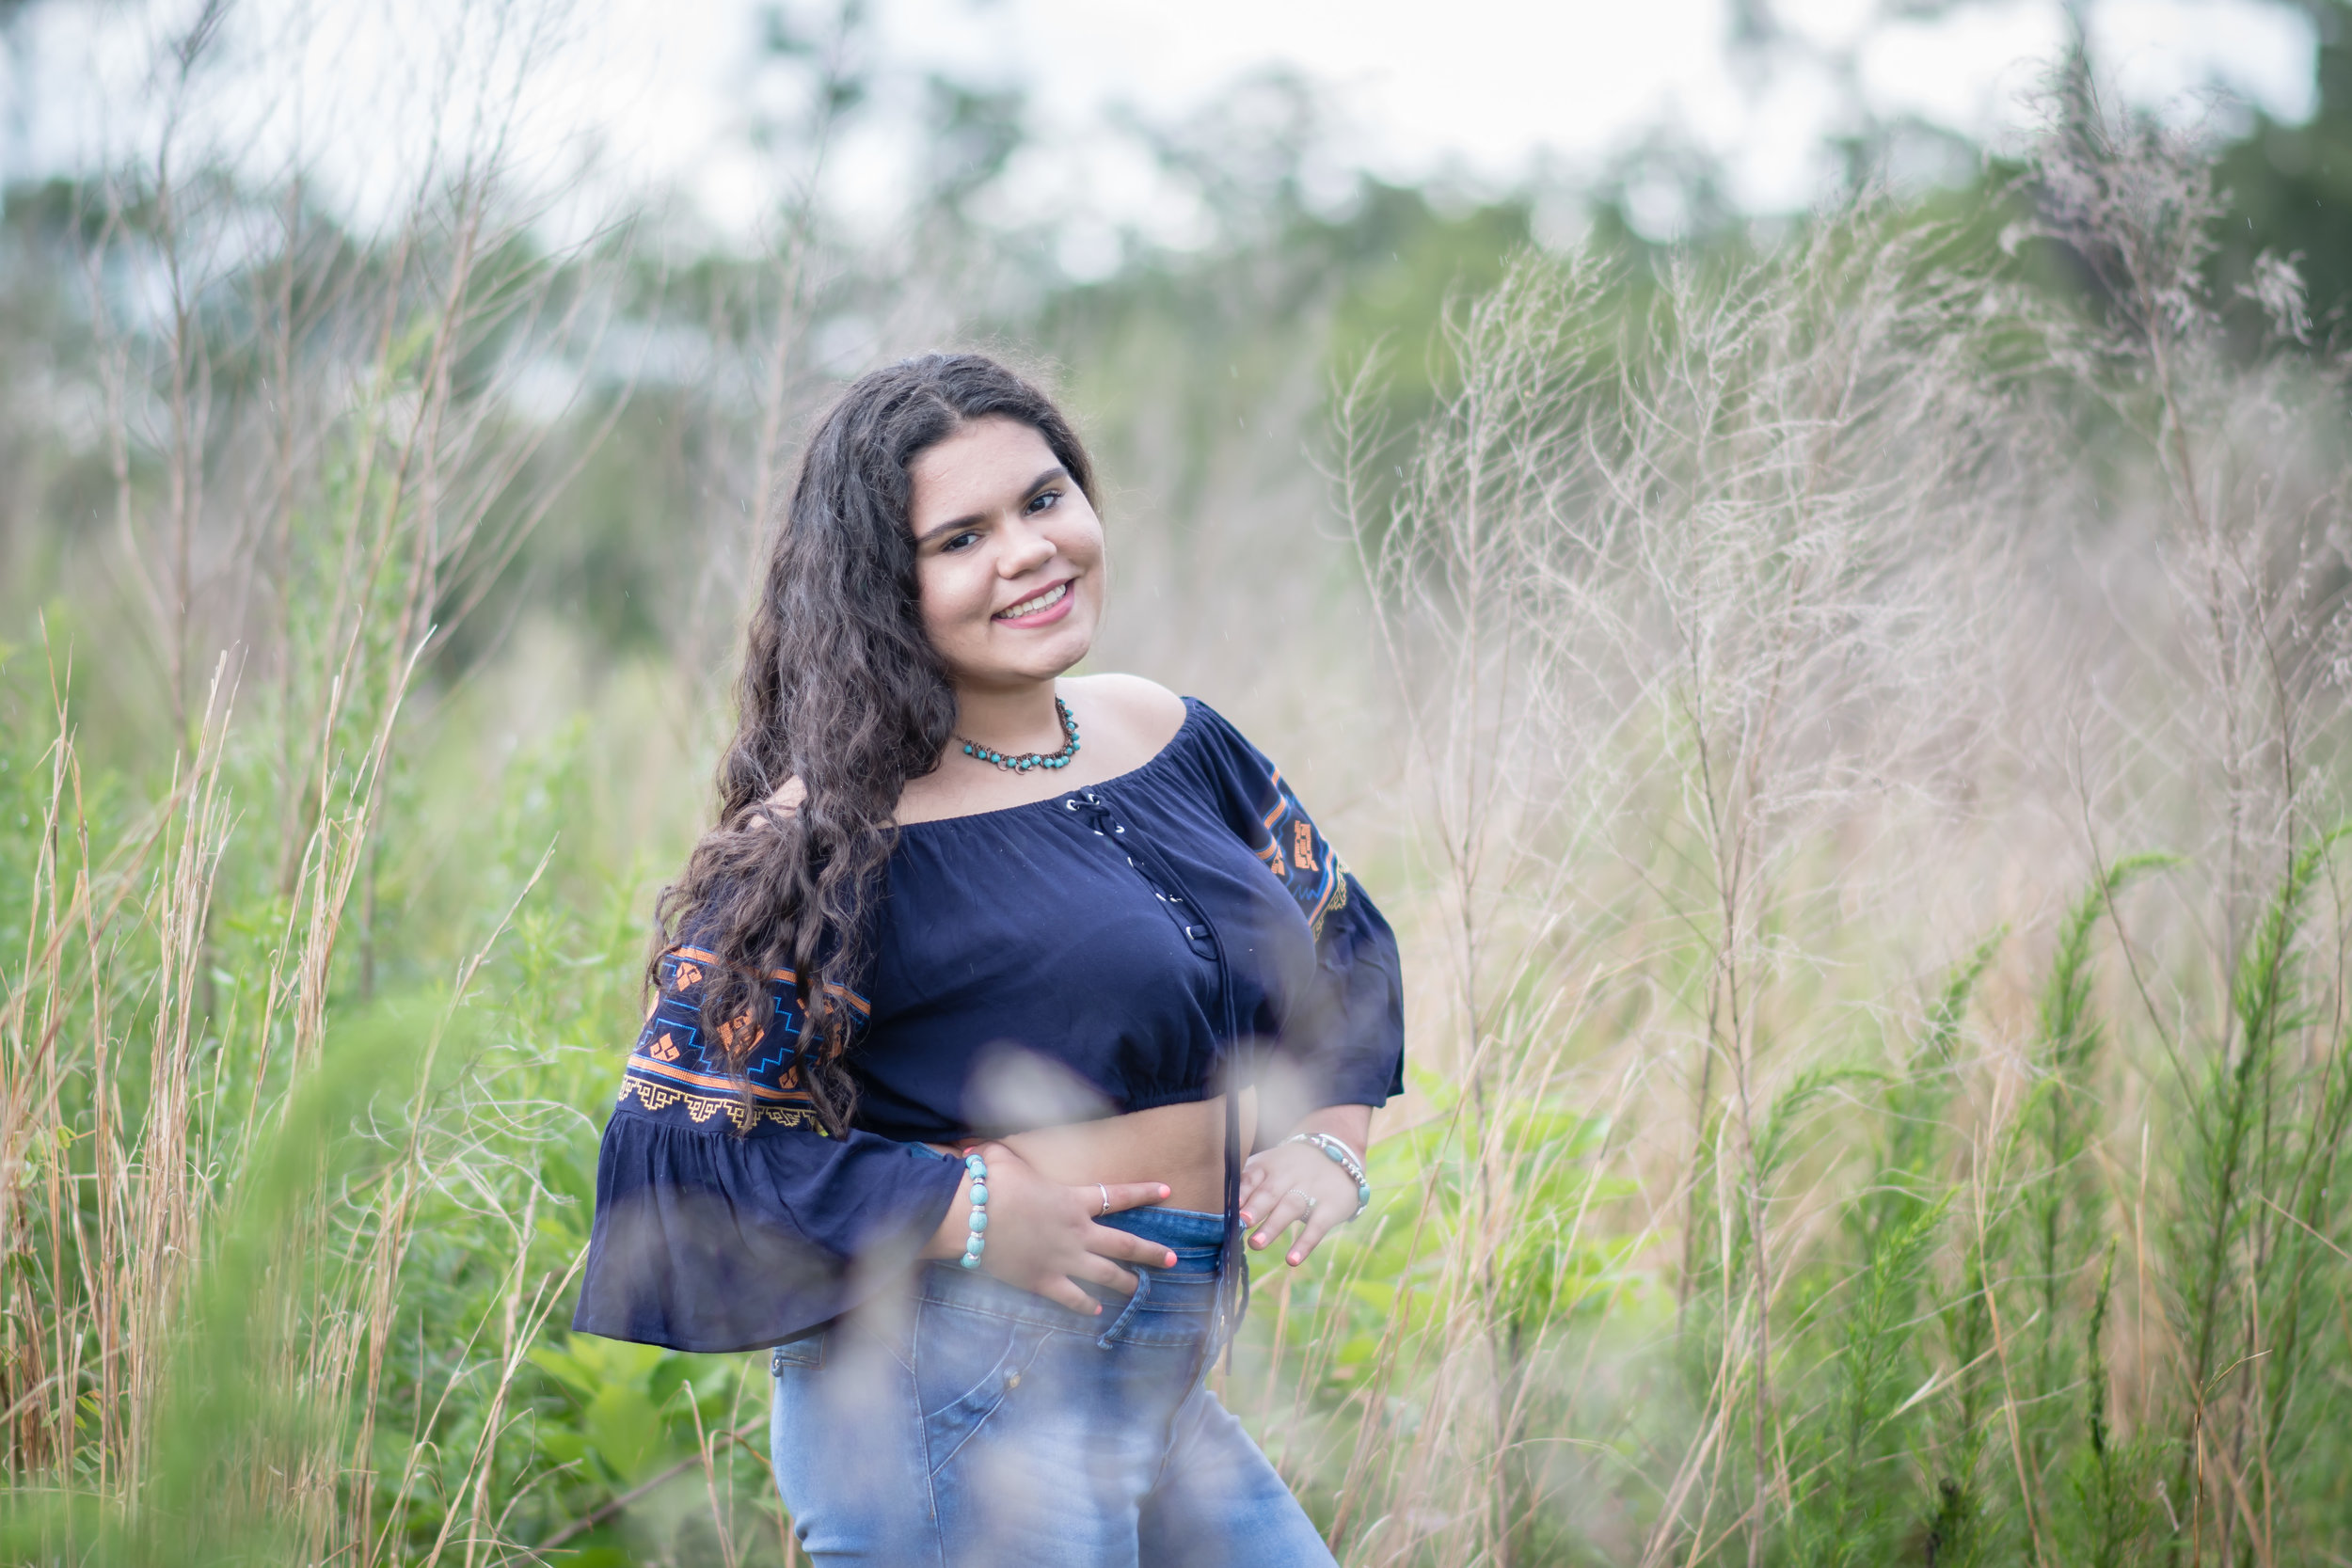 high-school-senior-photos-orlando-photographer-yanitza-ninett-55.jpg